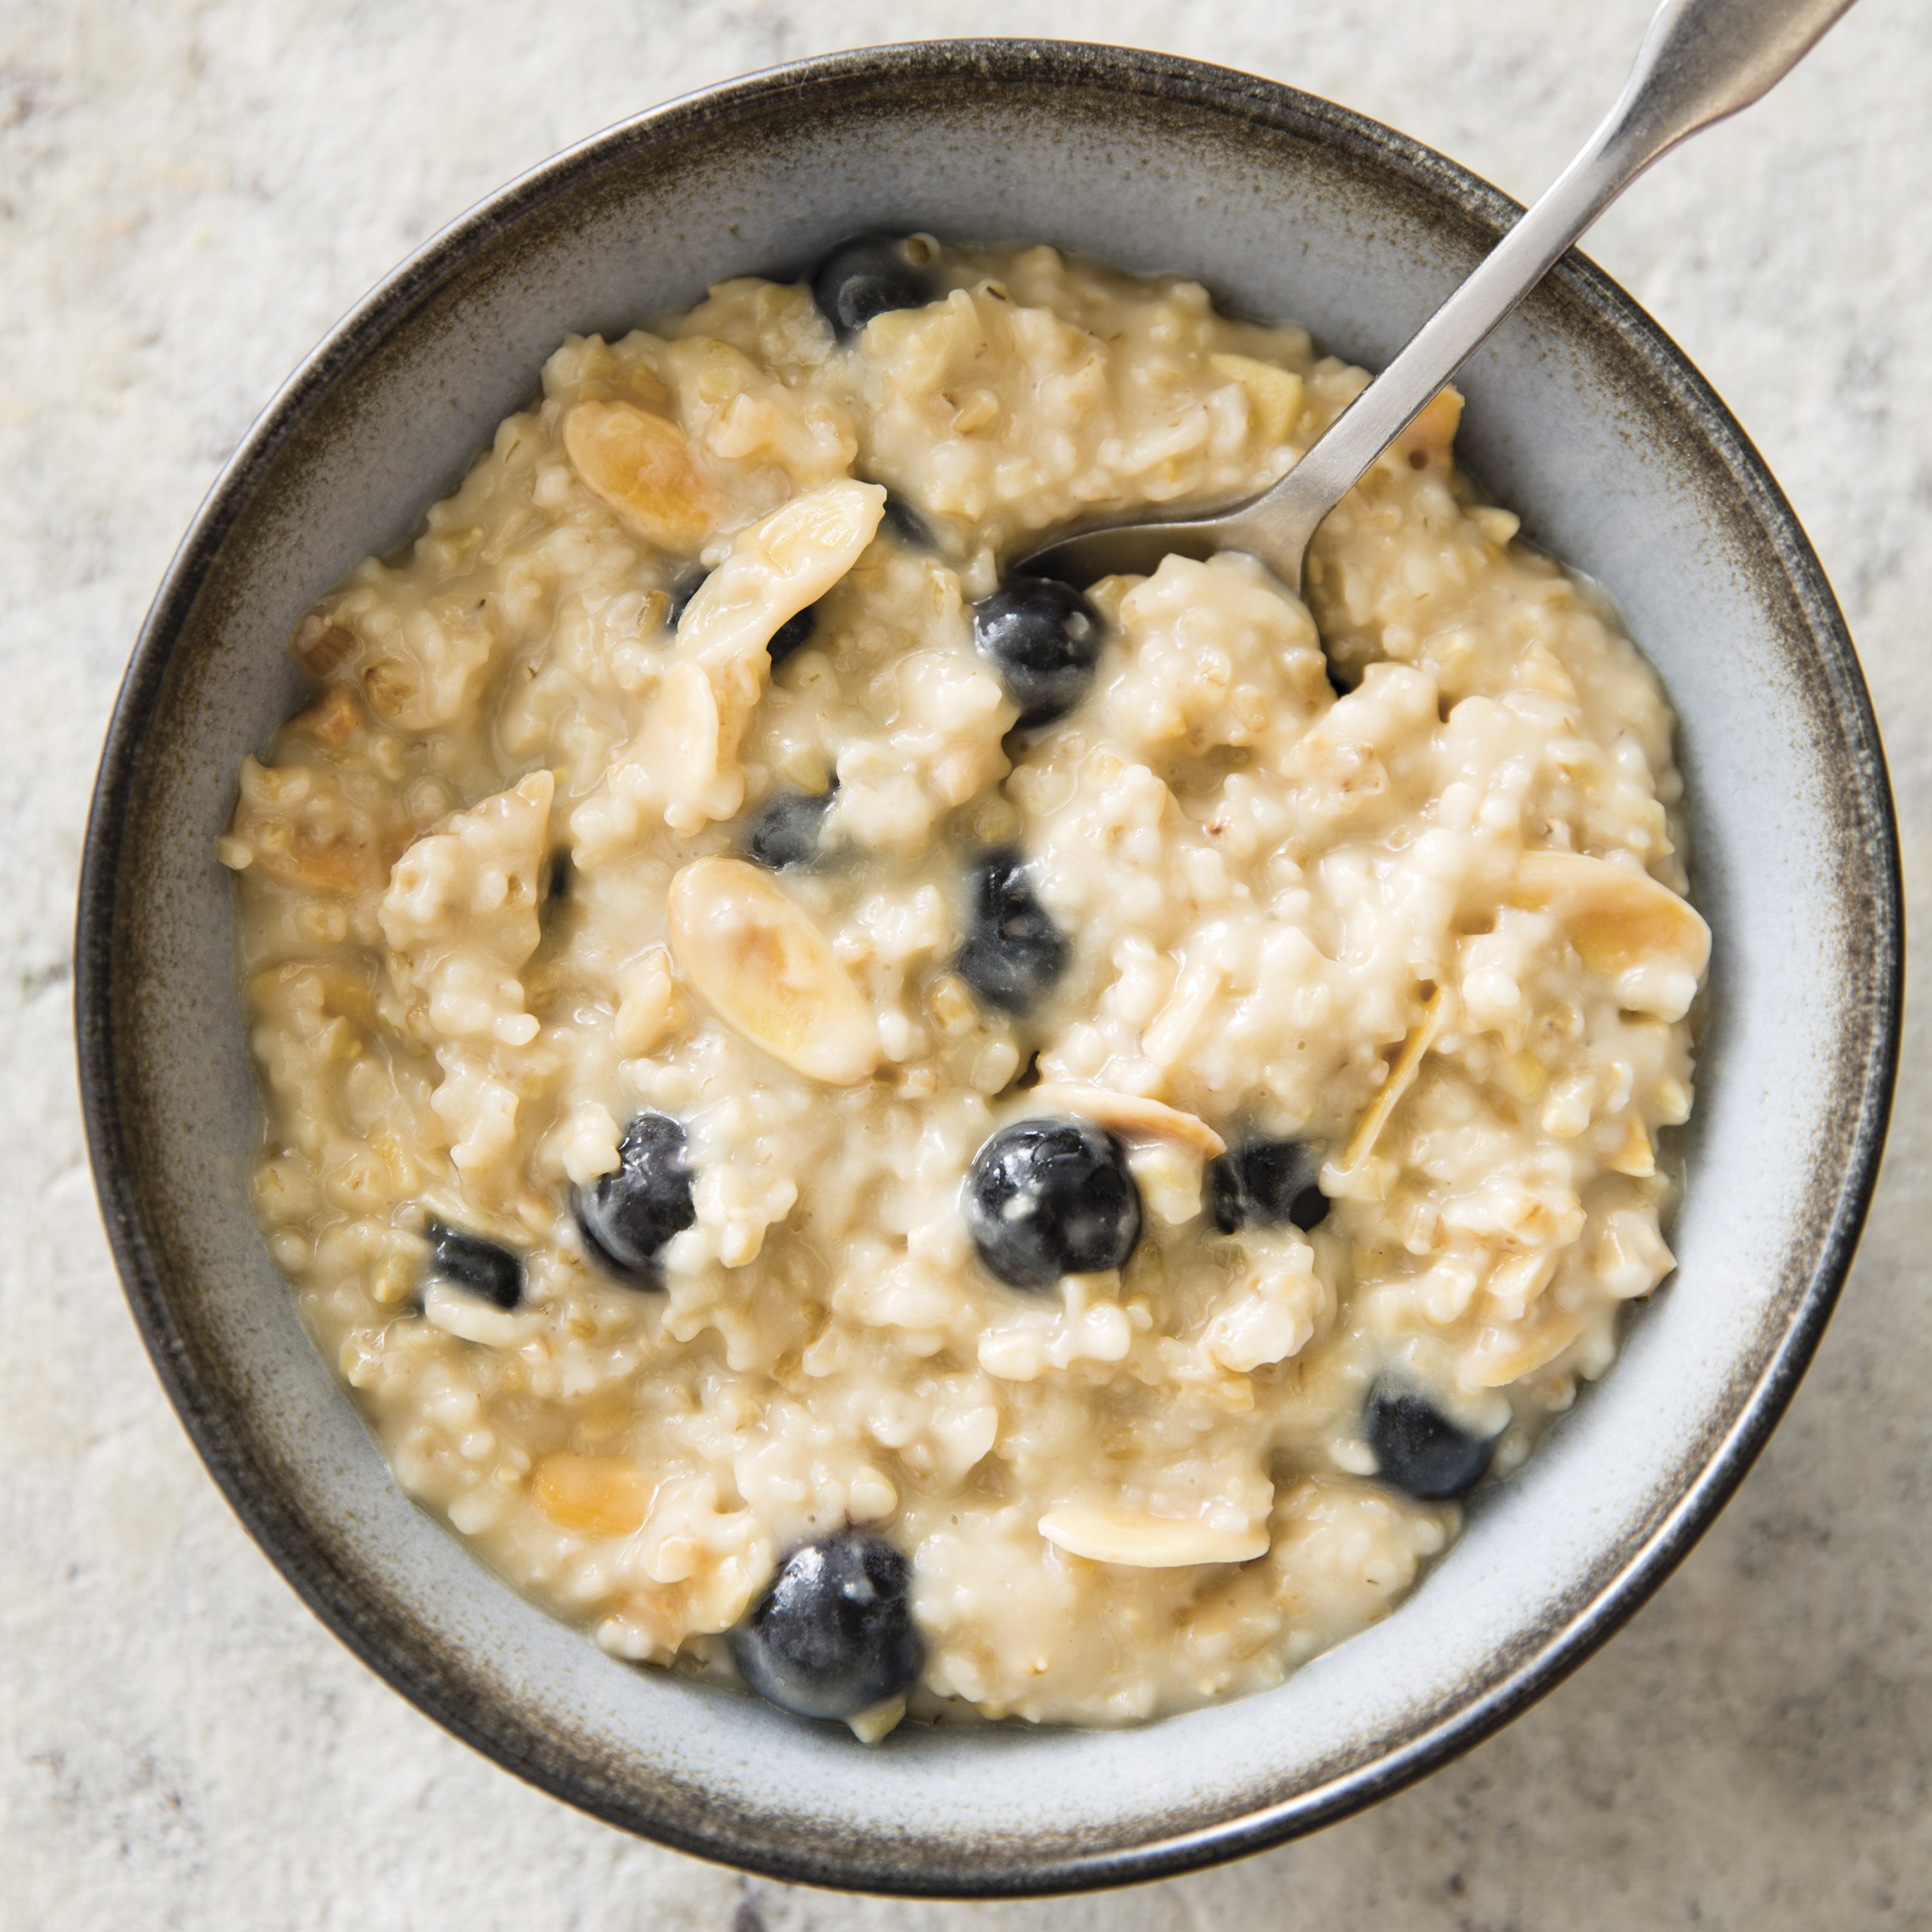 Great tasting oatmeal doesn't need to comes in a packet